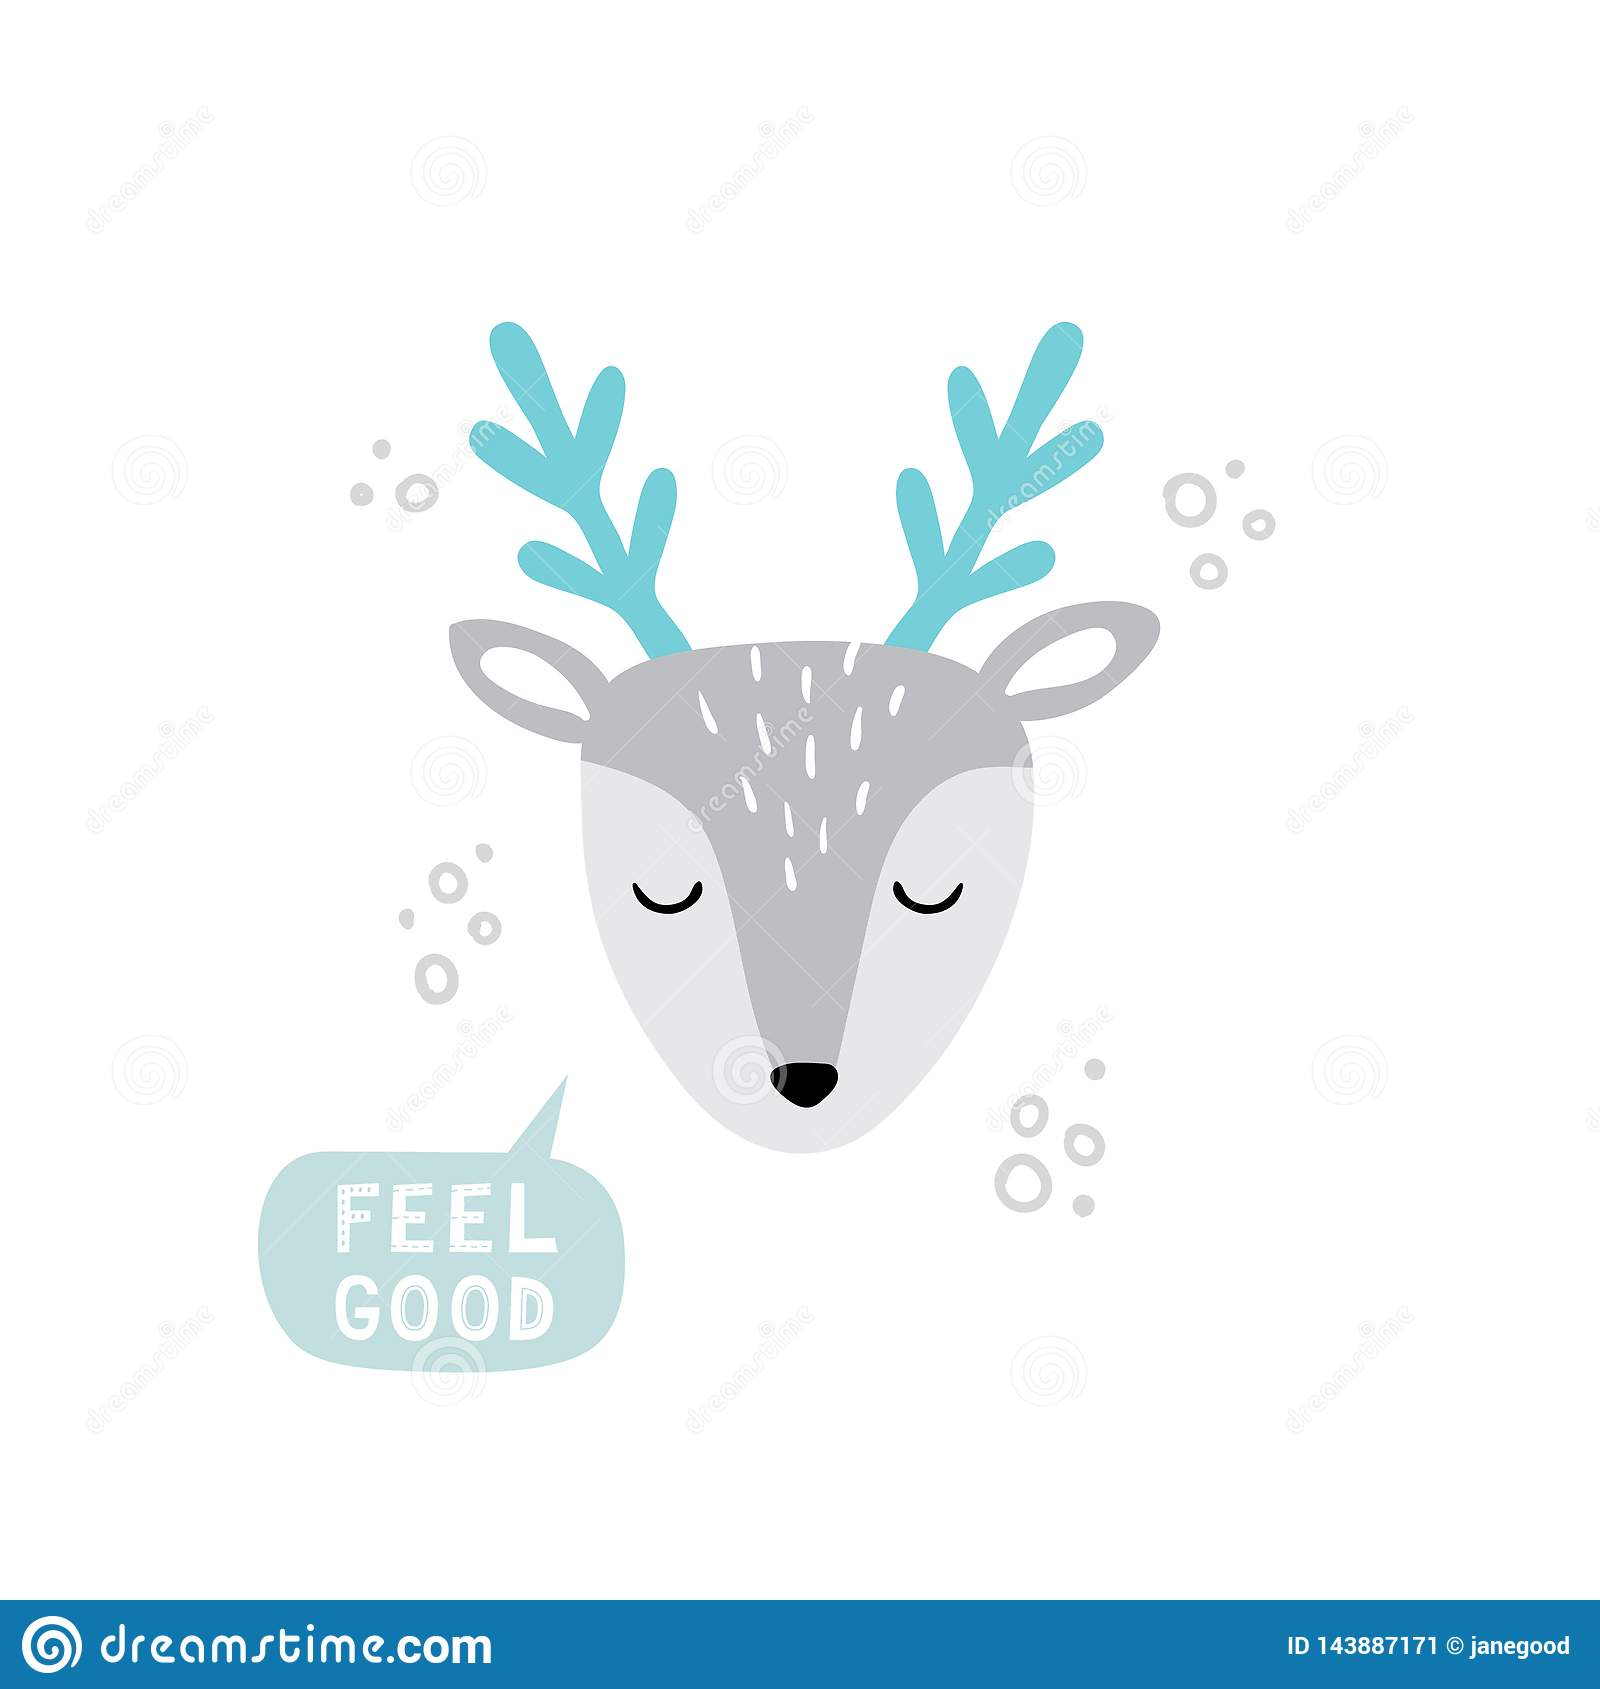 Cool Hand Drawn Deer Face Doodle Cartoon Illustration With